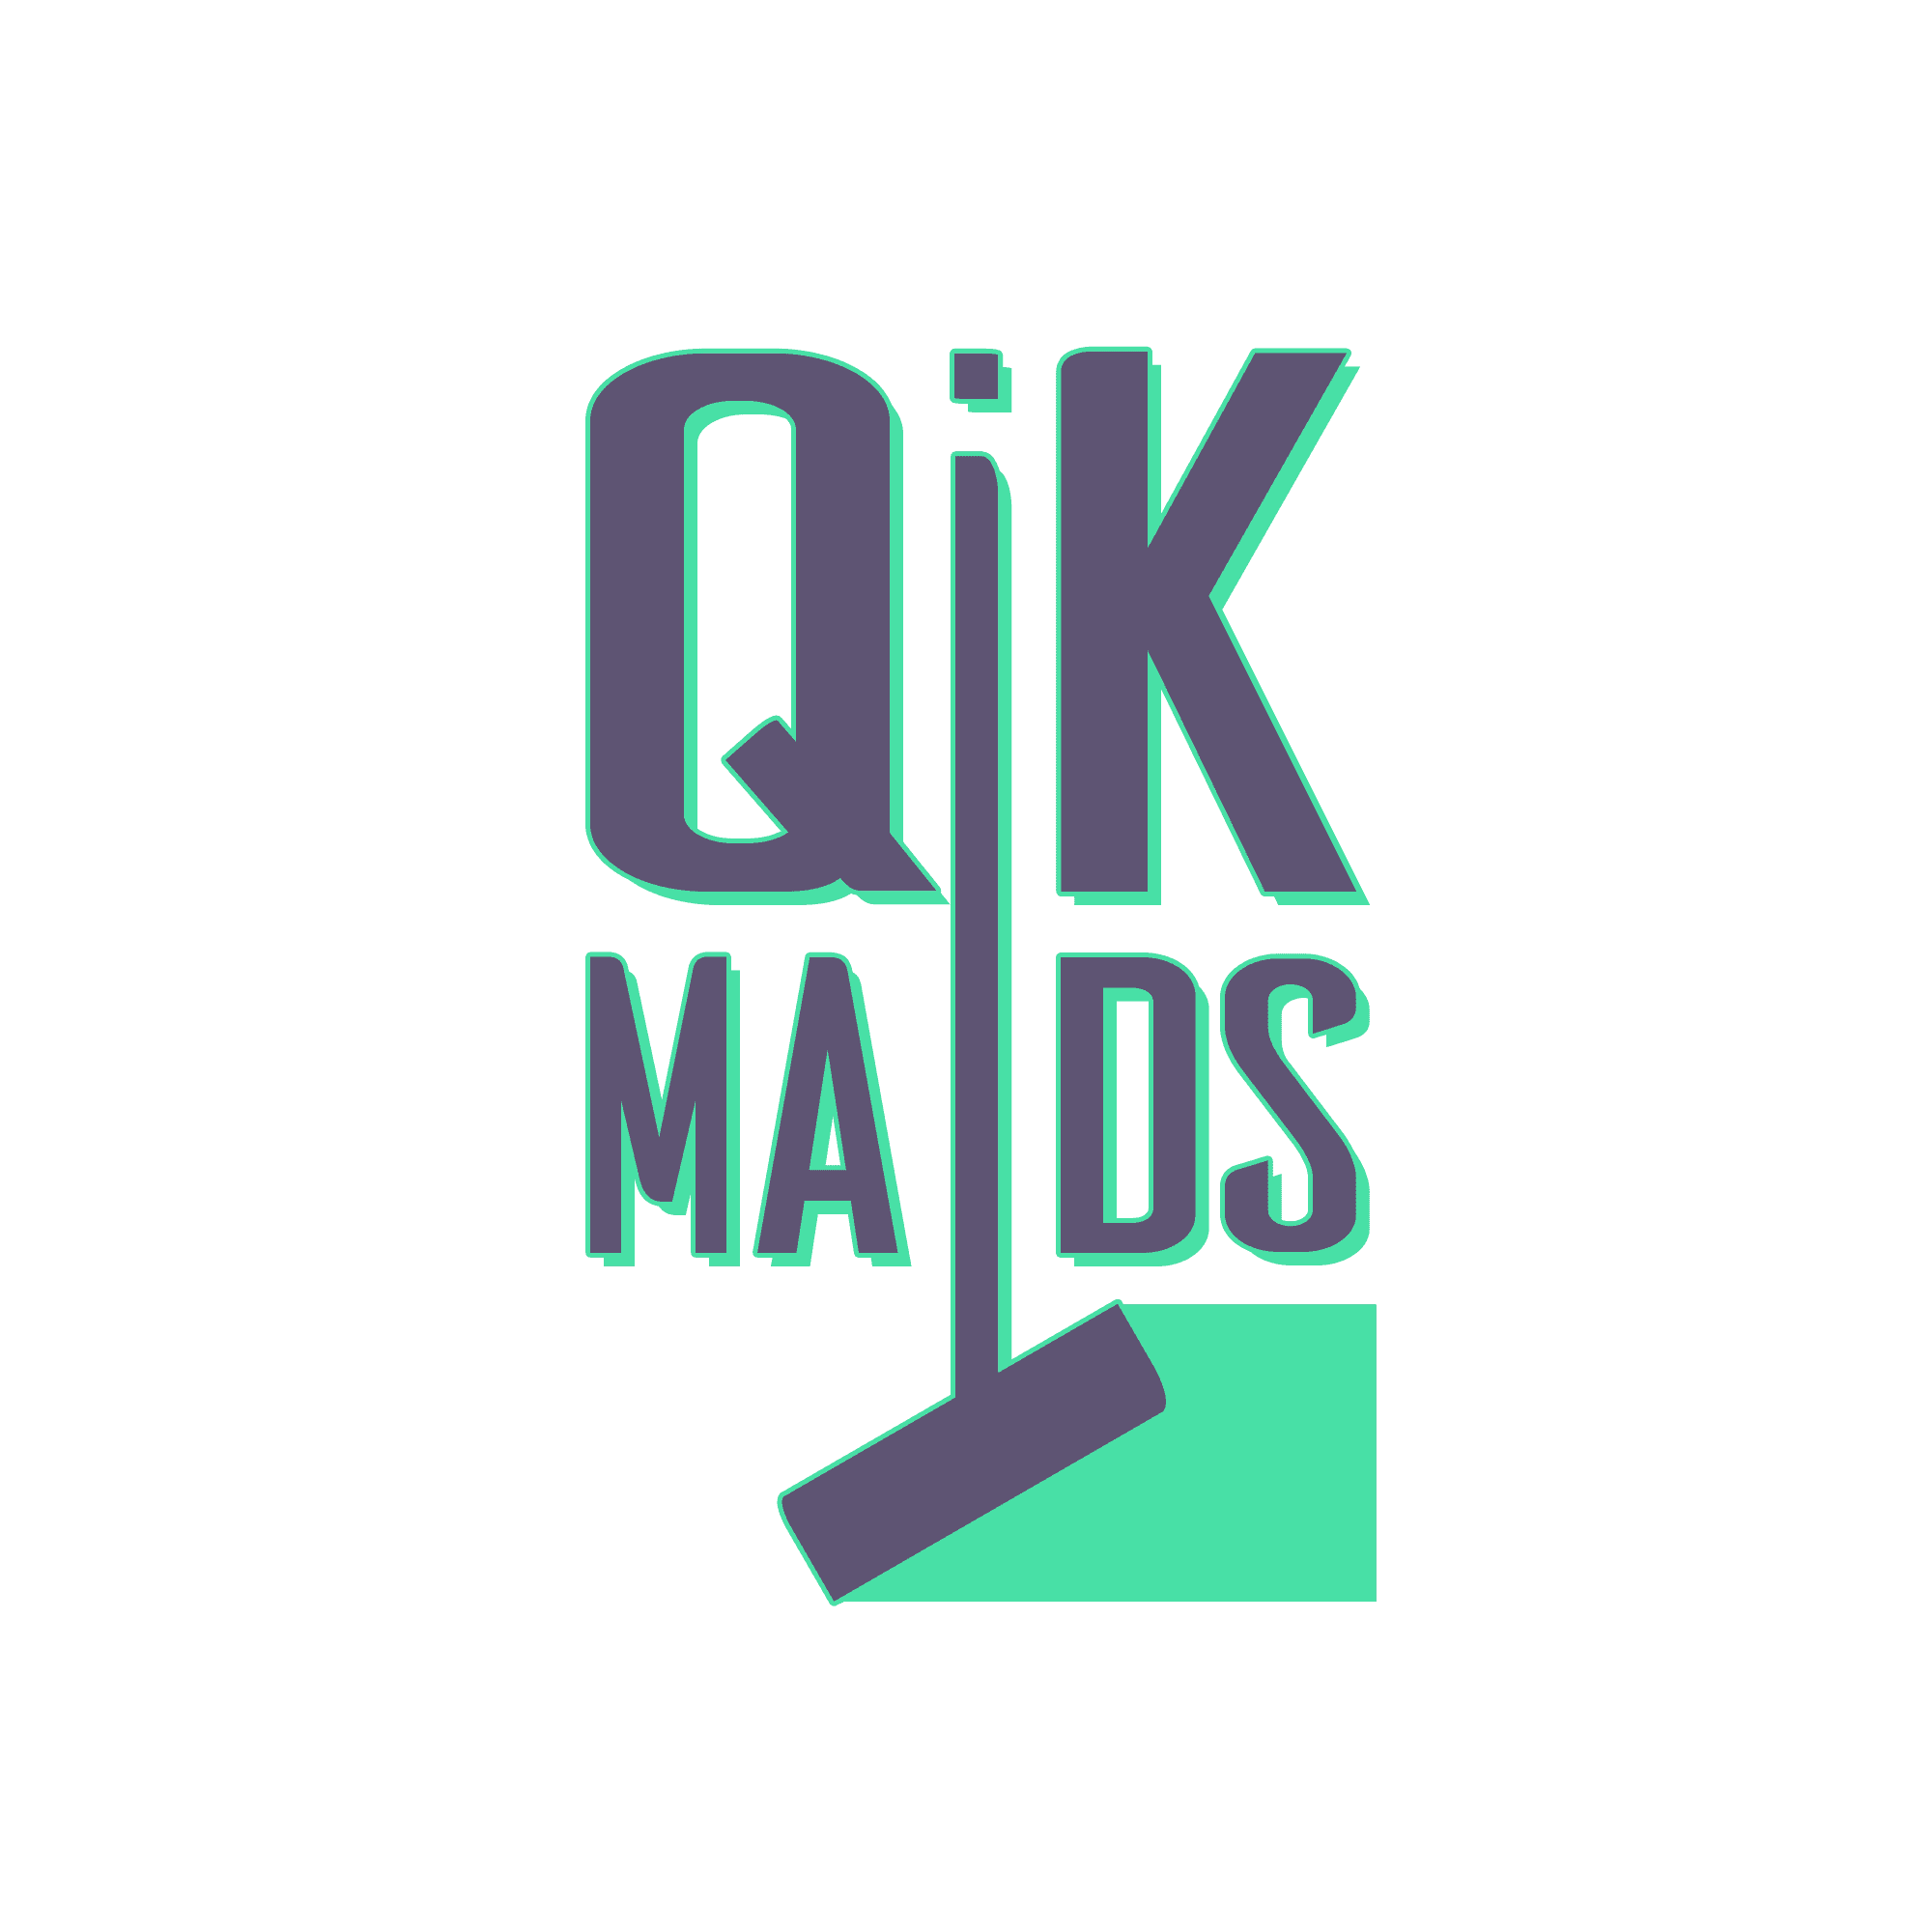 Qik! Maids Cleaning Service